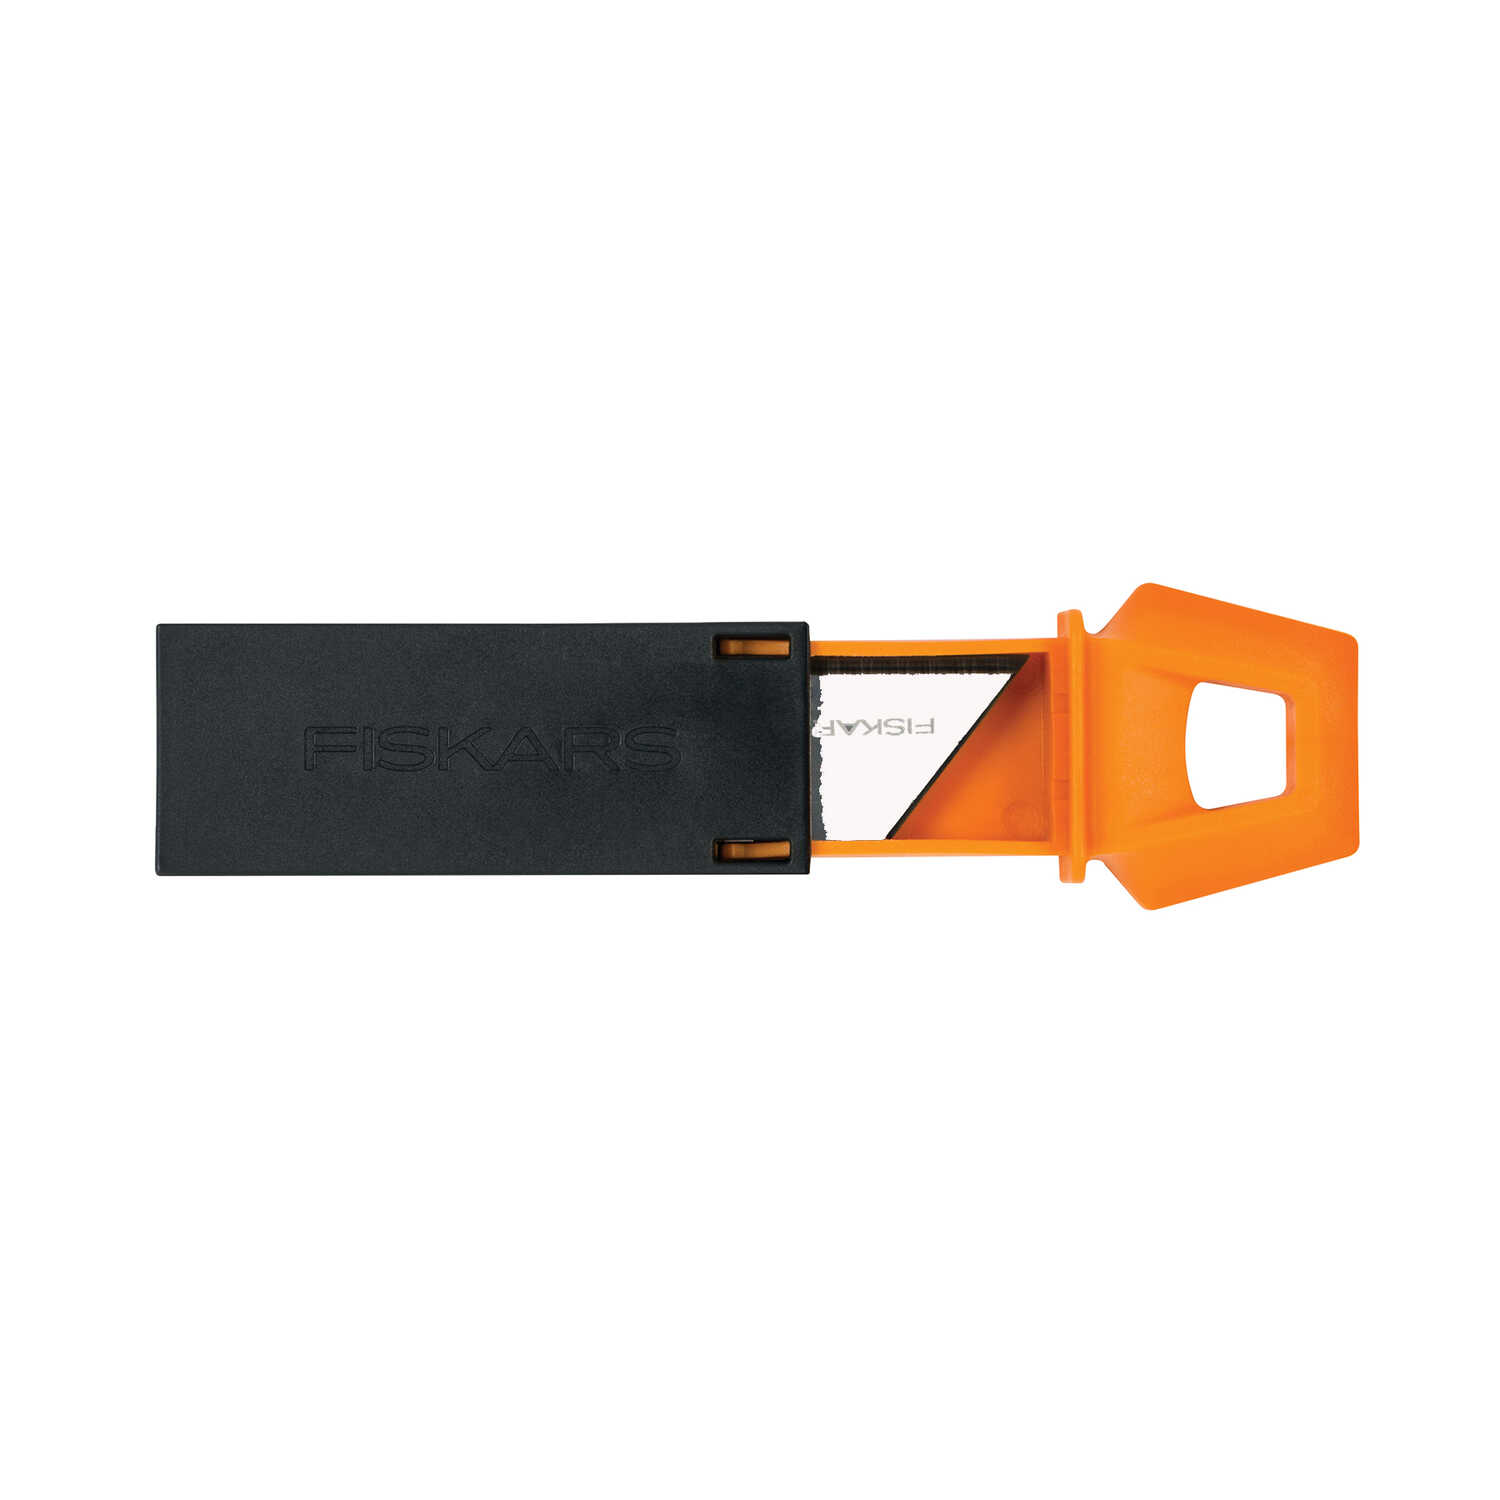 Fiskars  CarbonMax  2.4 in. L x 0.03 in.  Steel  Utility  Replacement Blade  10 pk